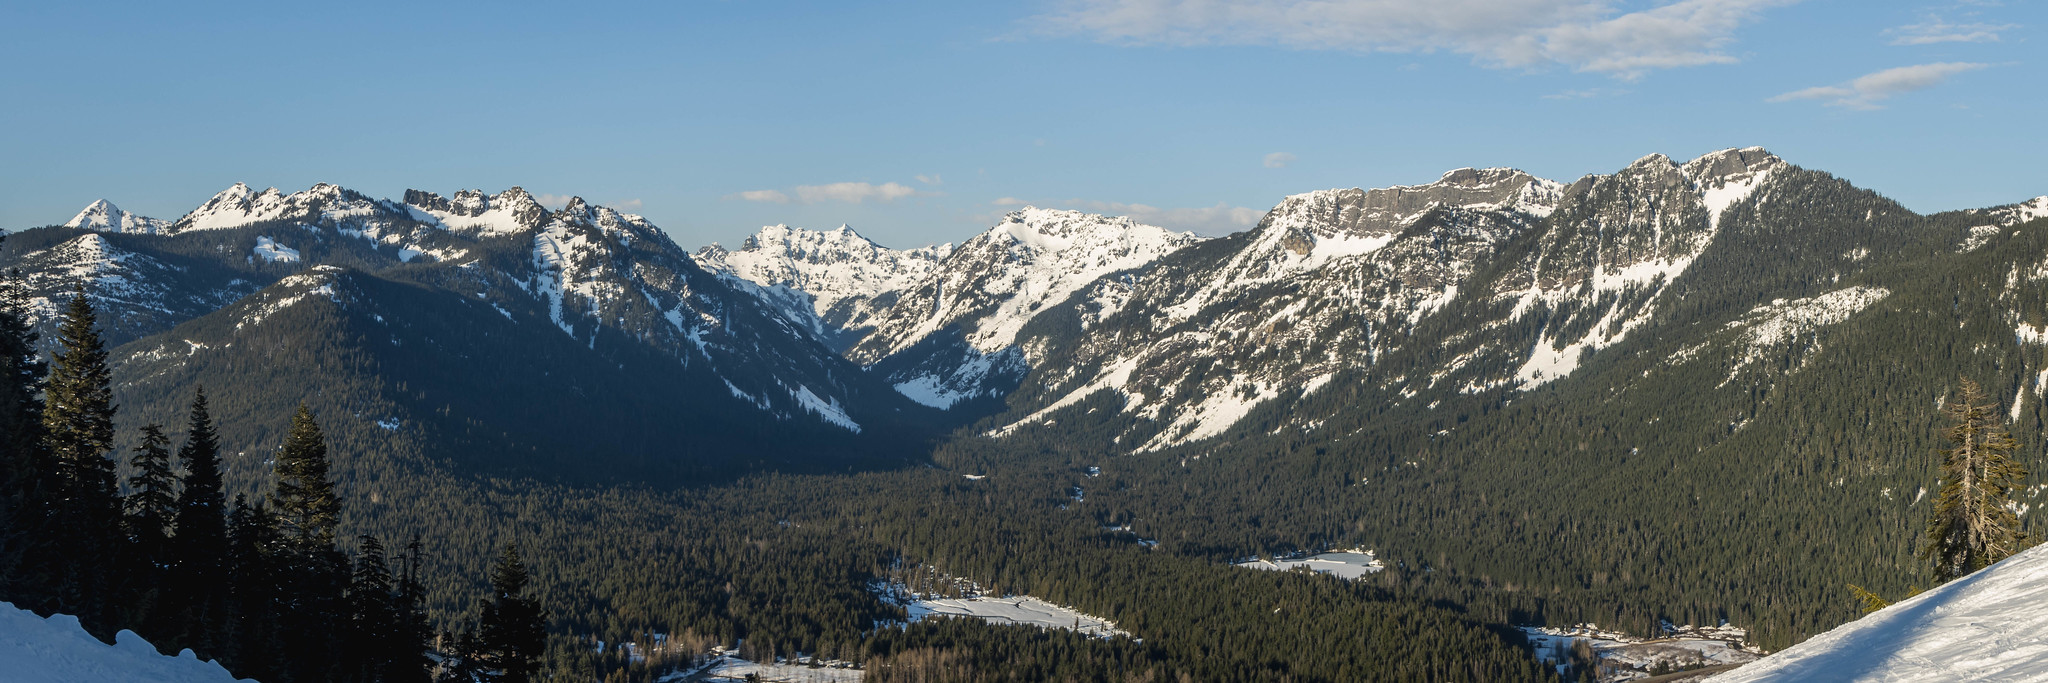 Gold Creek Valley panoramic view